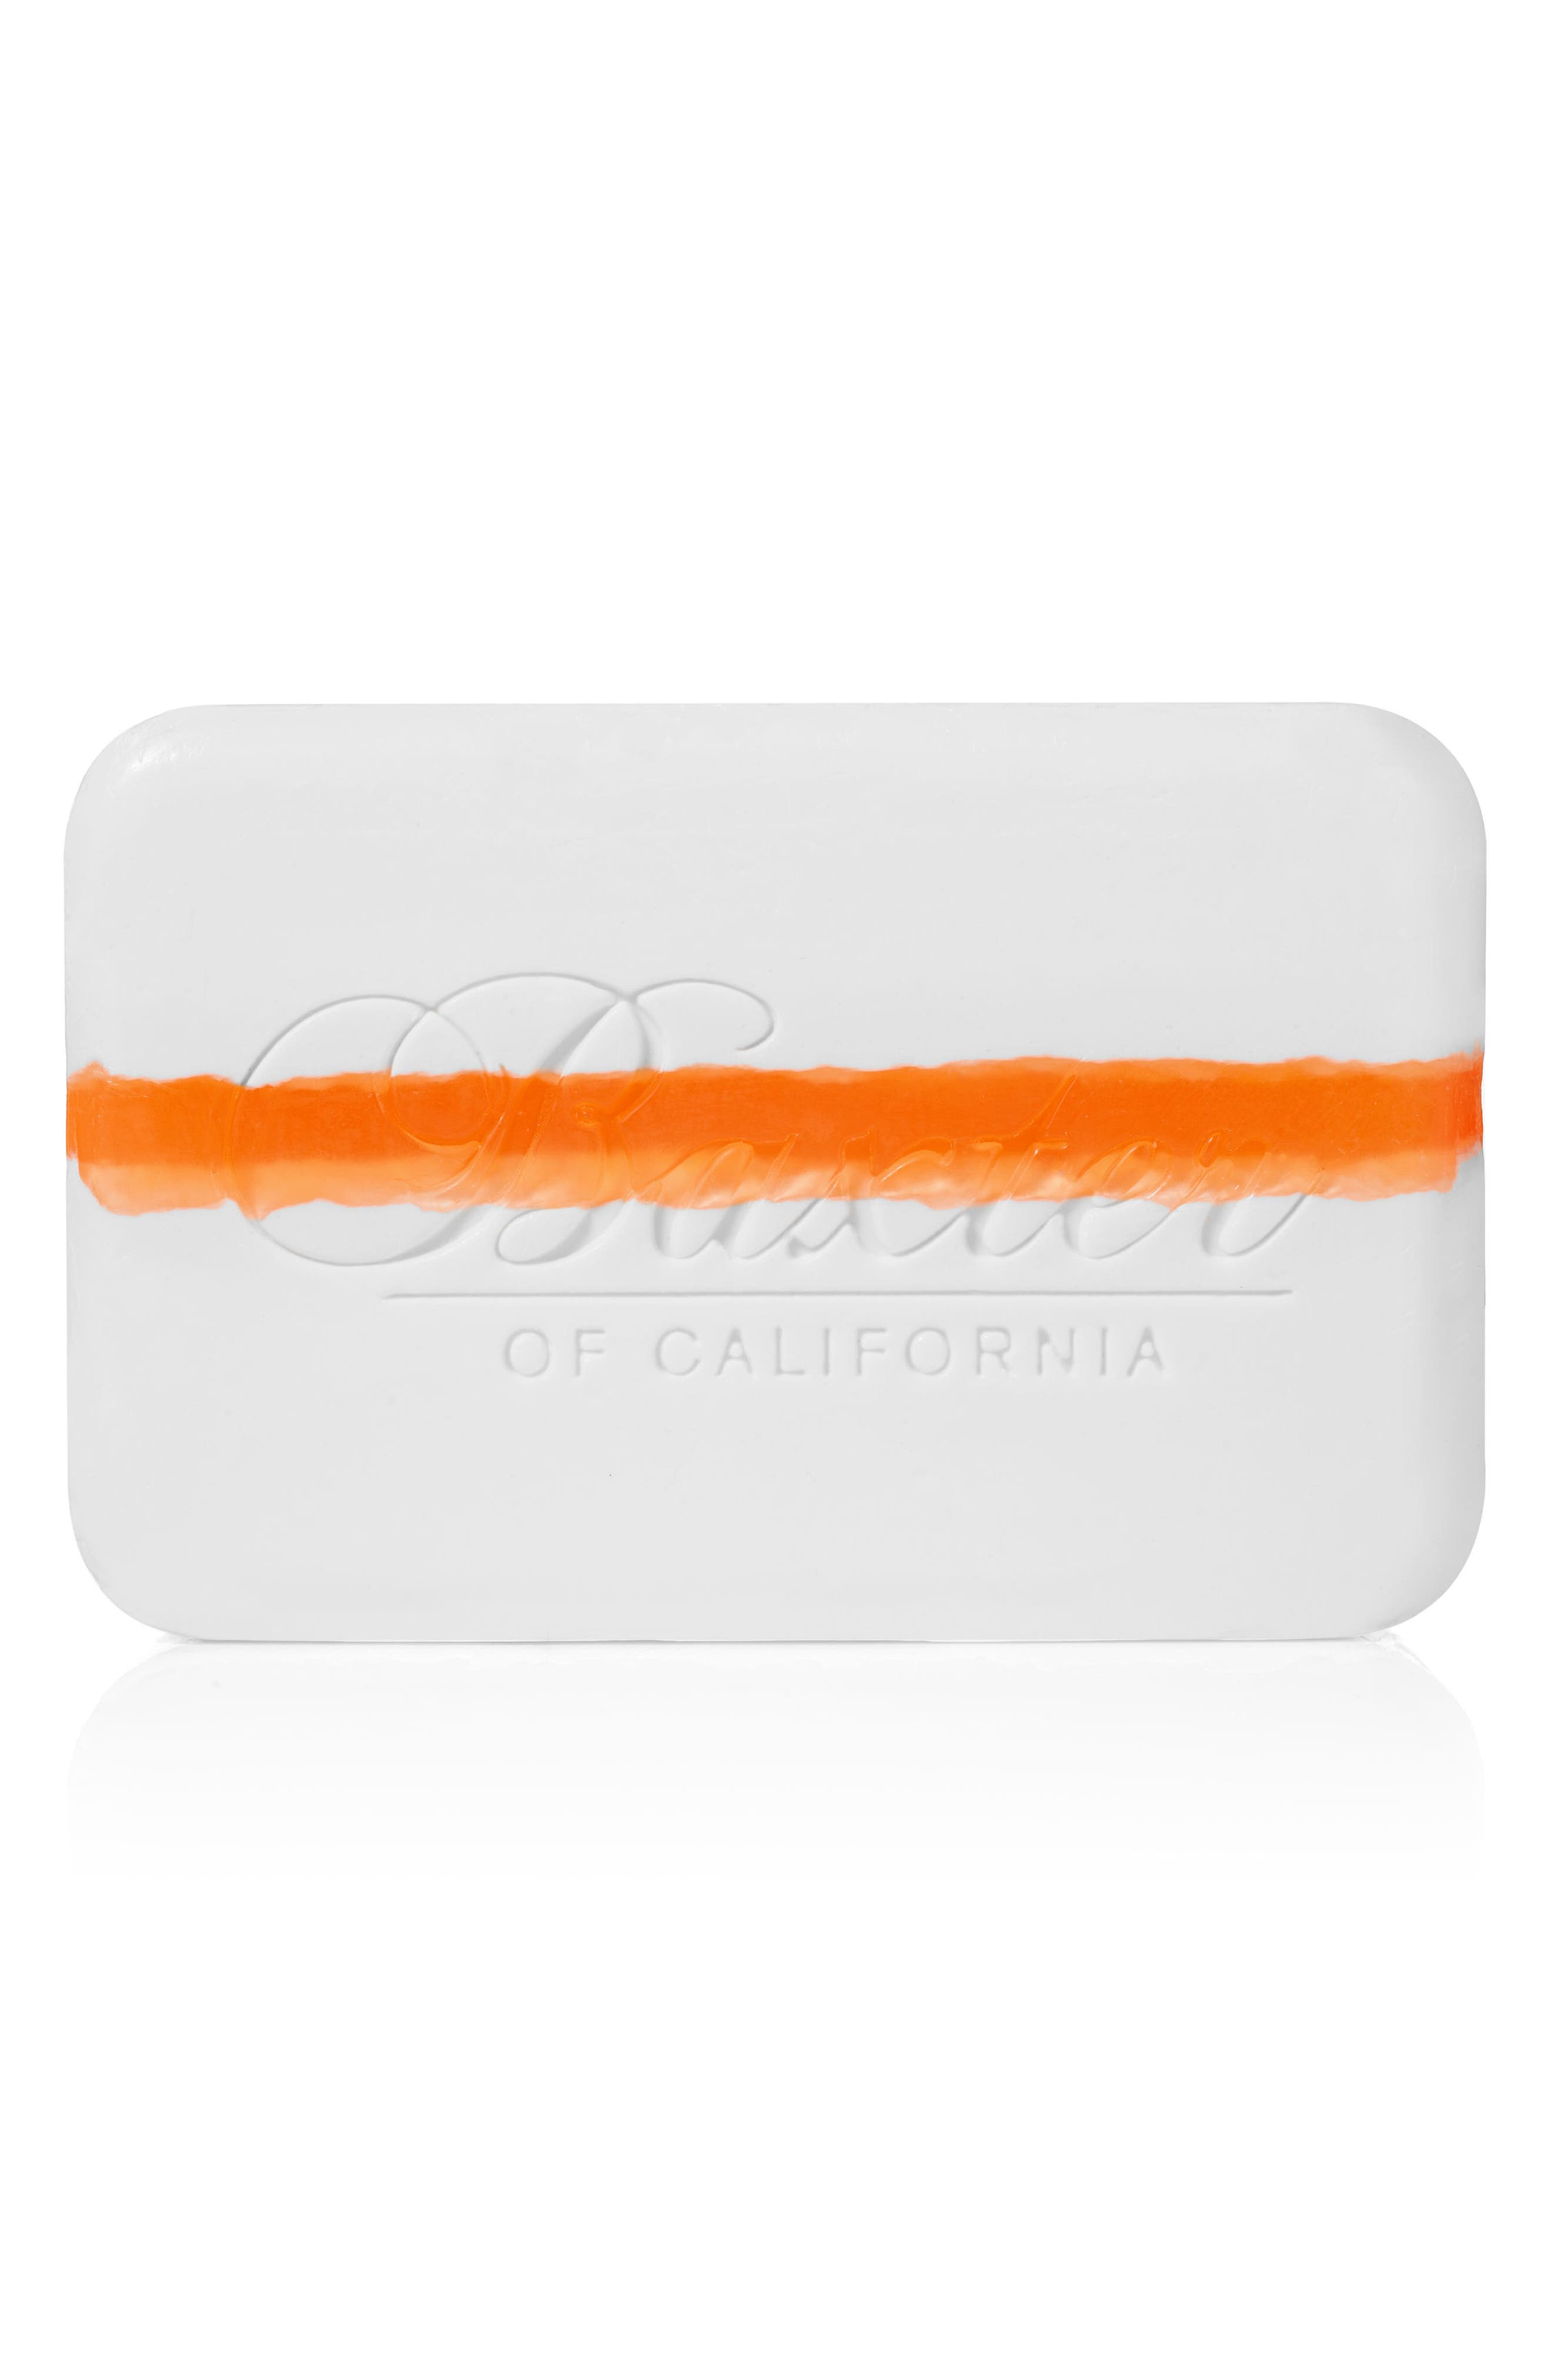 Vitamin Cleansing Bar,                             Alternate thumbnail 2, color,                             No Color